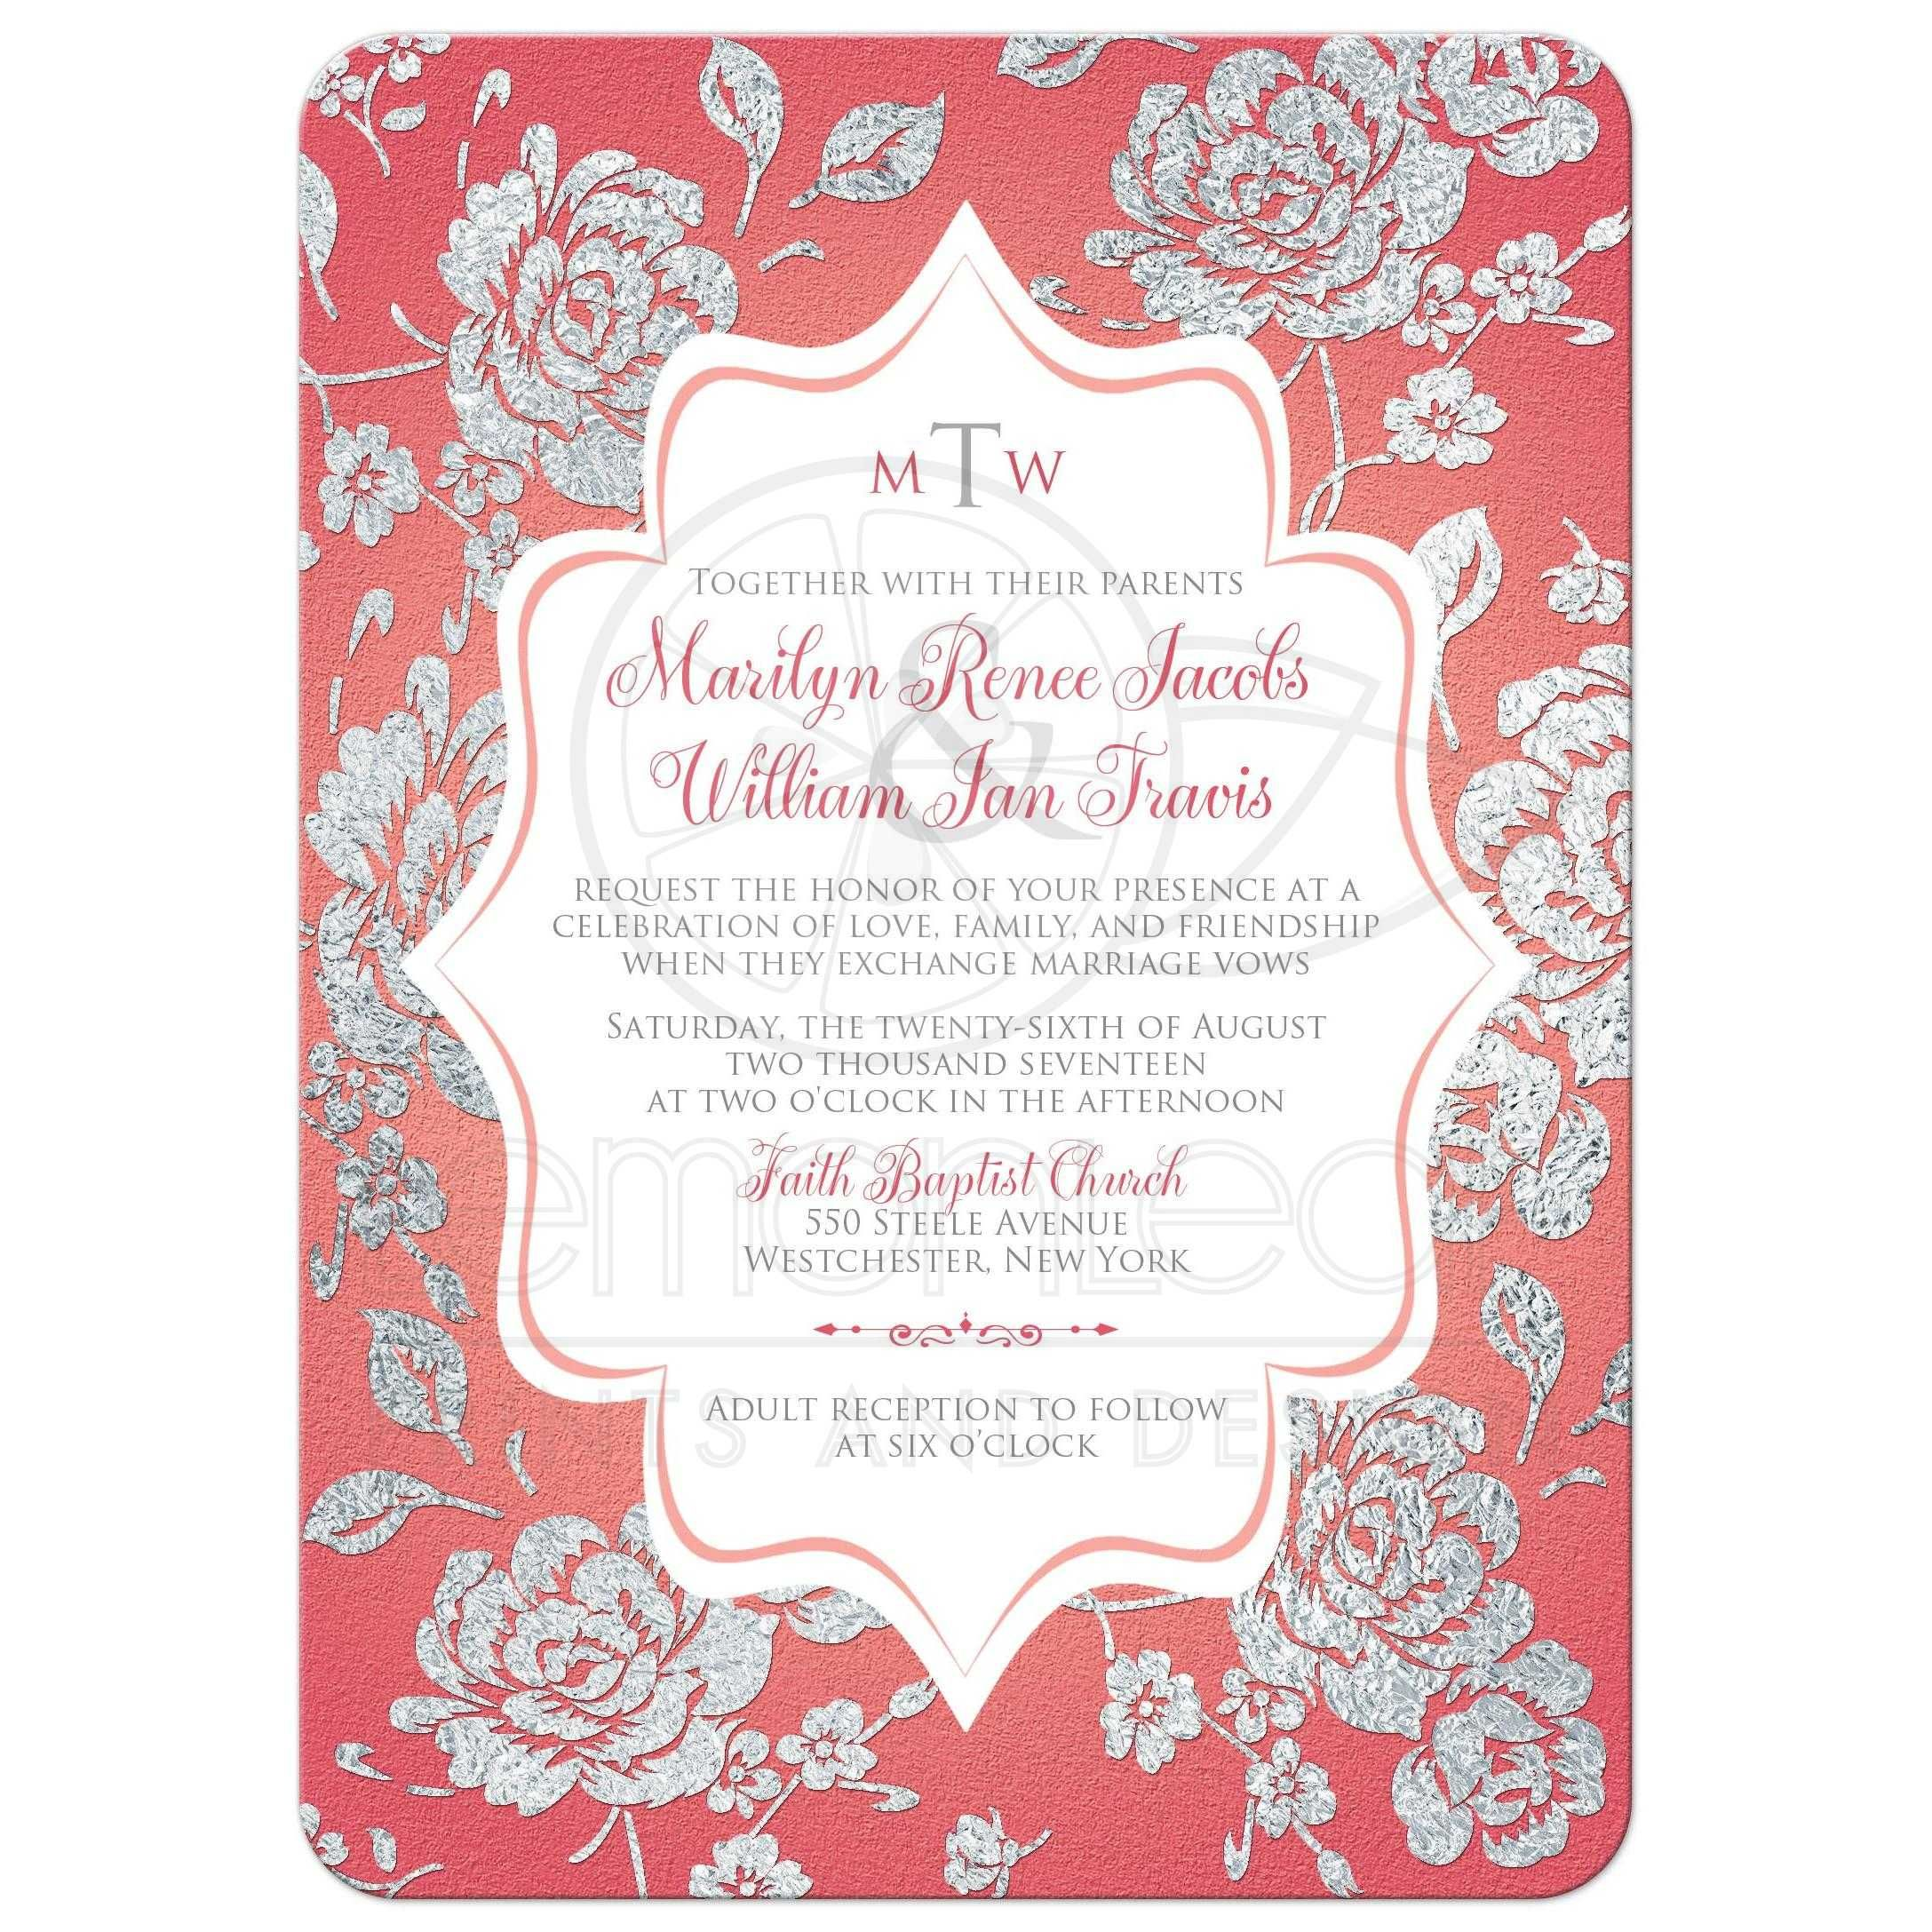 Coral pink wedding invitation monogrammed faux silver floral on coral pink wedding invitation monogrammed faux silver floral on white monicamarmolfo Gallery